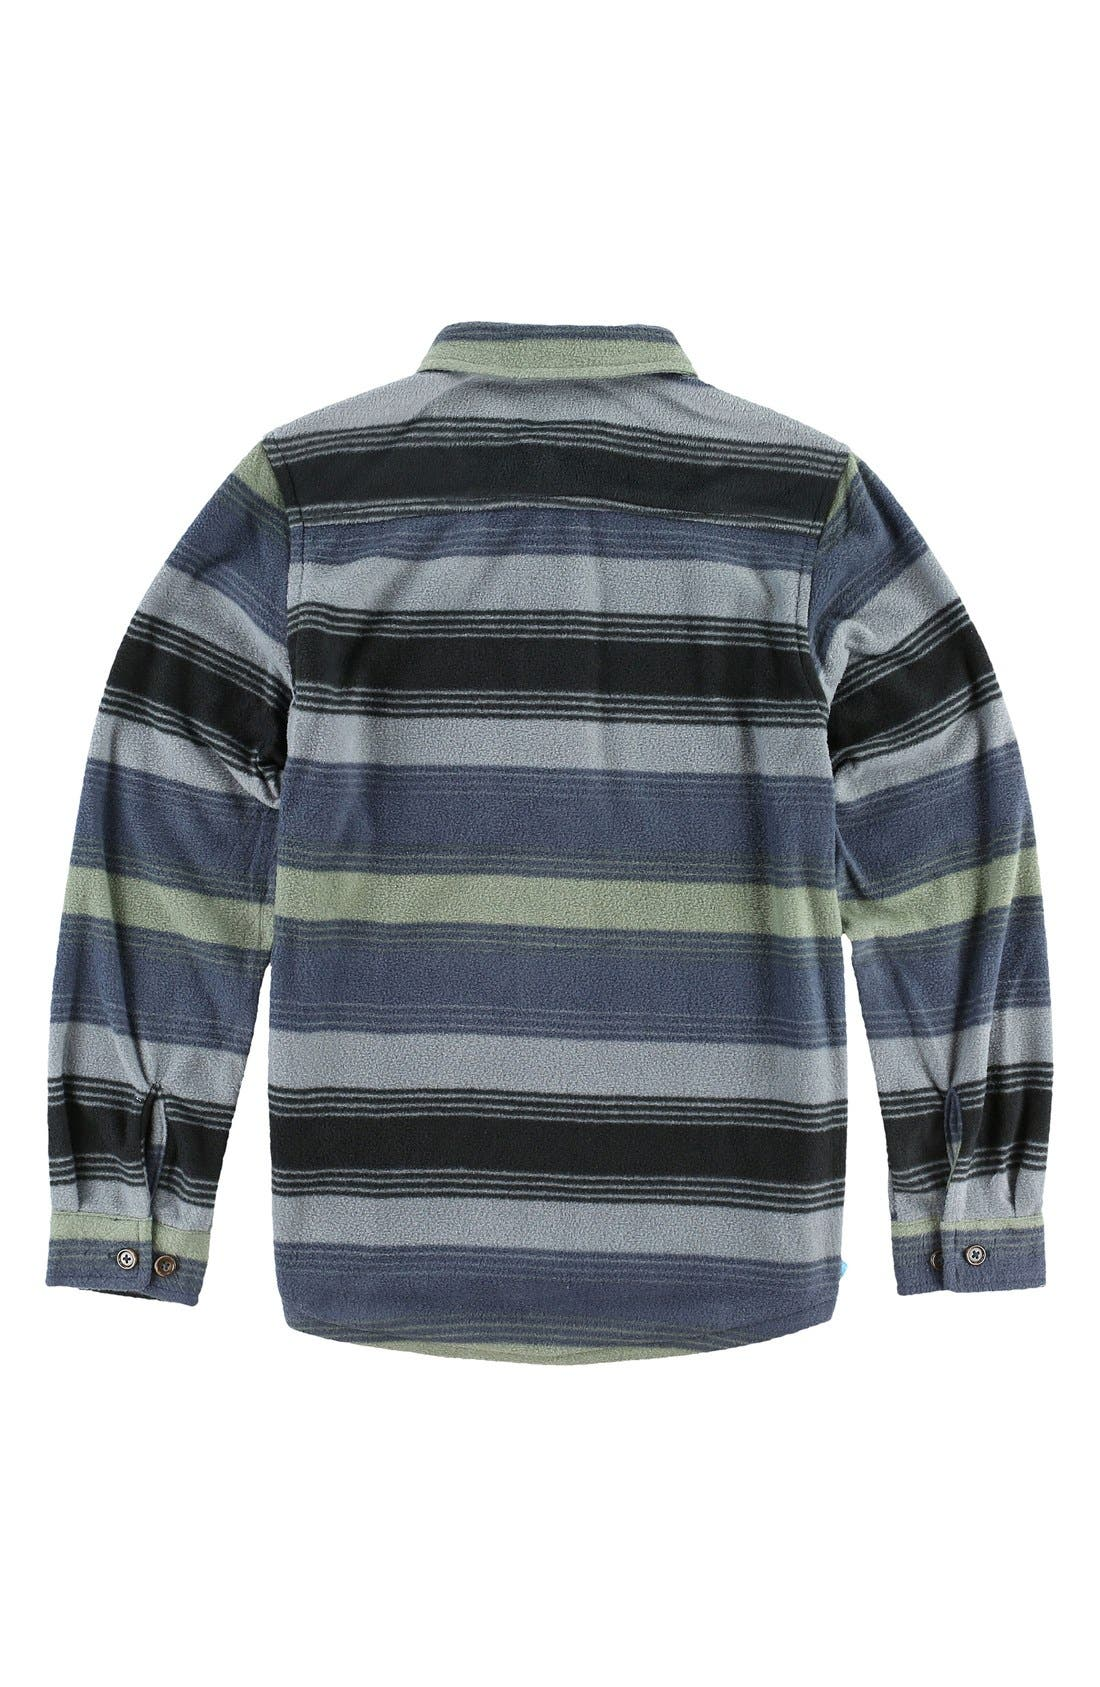 'Glacier Stripe' Fleece Shirt,                             Alternate thumbnail 2, color,                             068